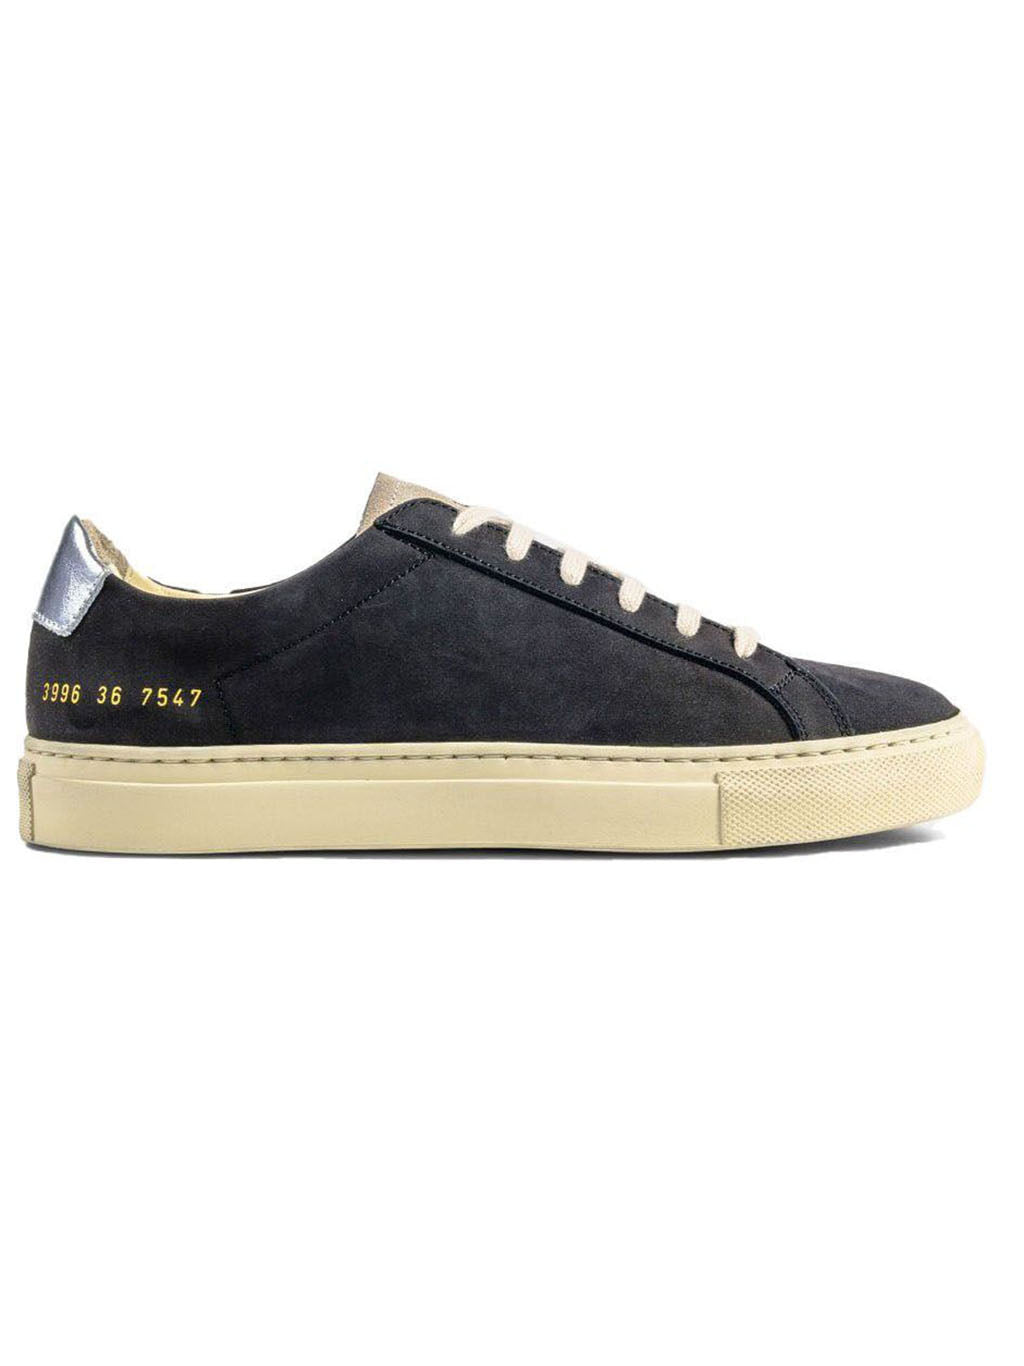 Black Retro Low Special Edition Sneakers